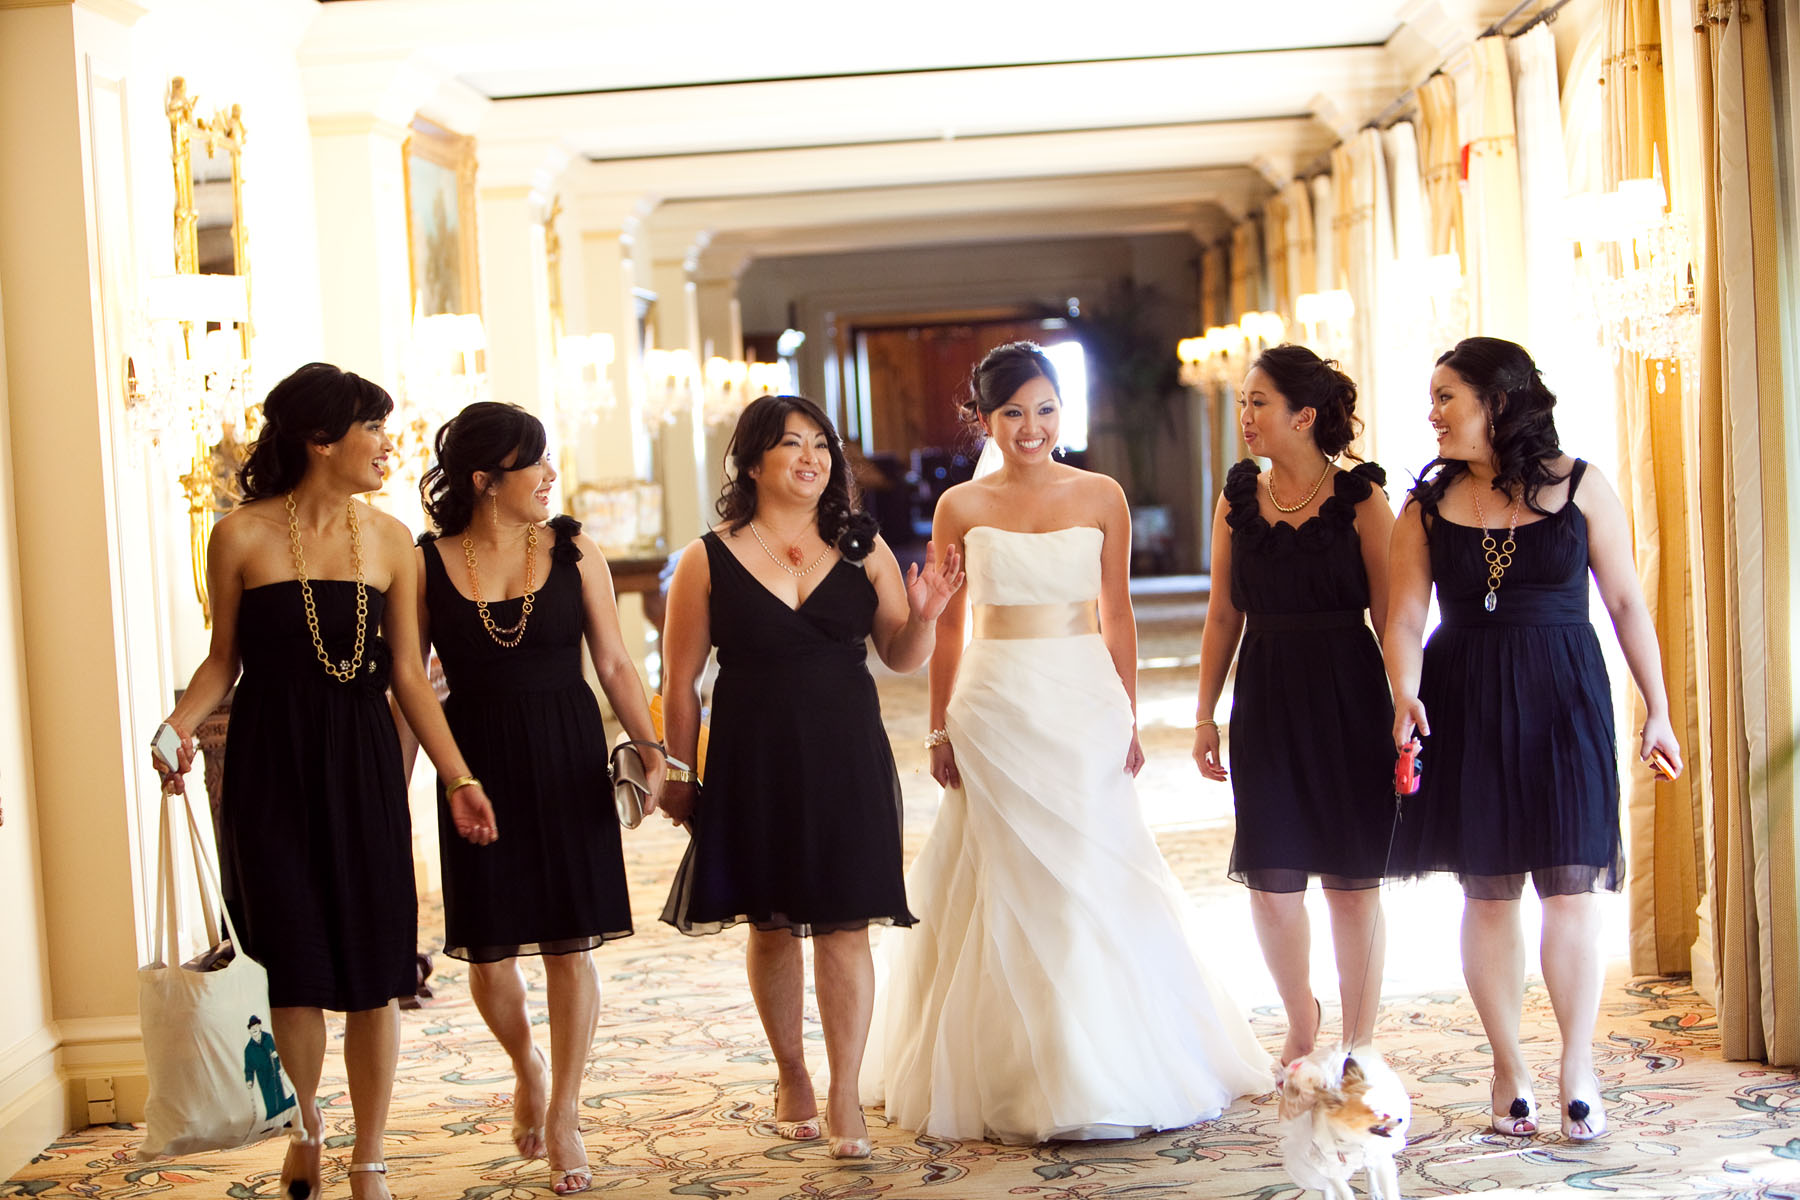 Be Kind To Your Bridesmaids